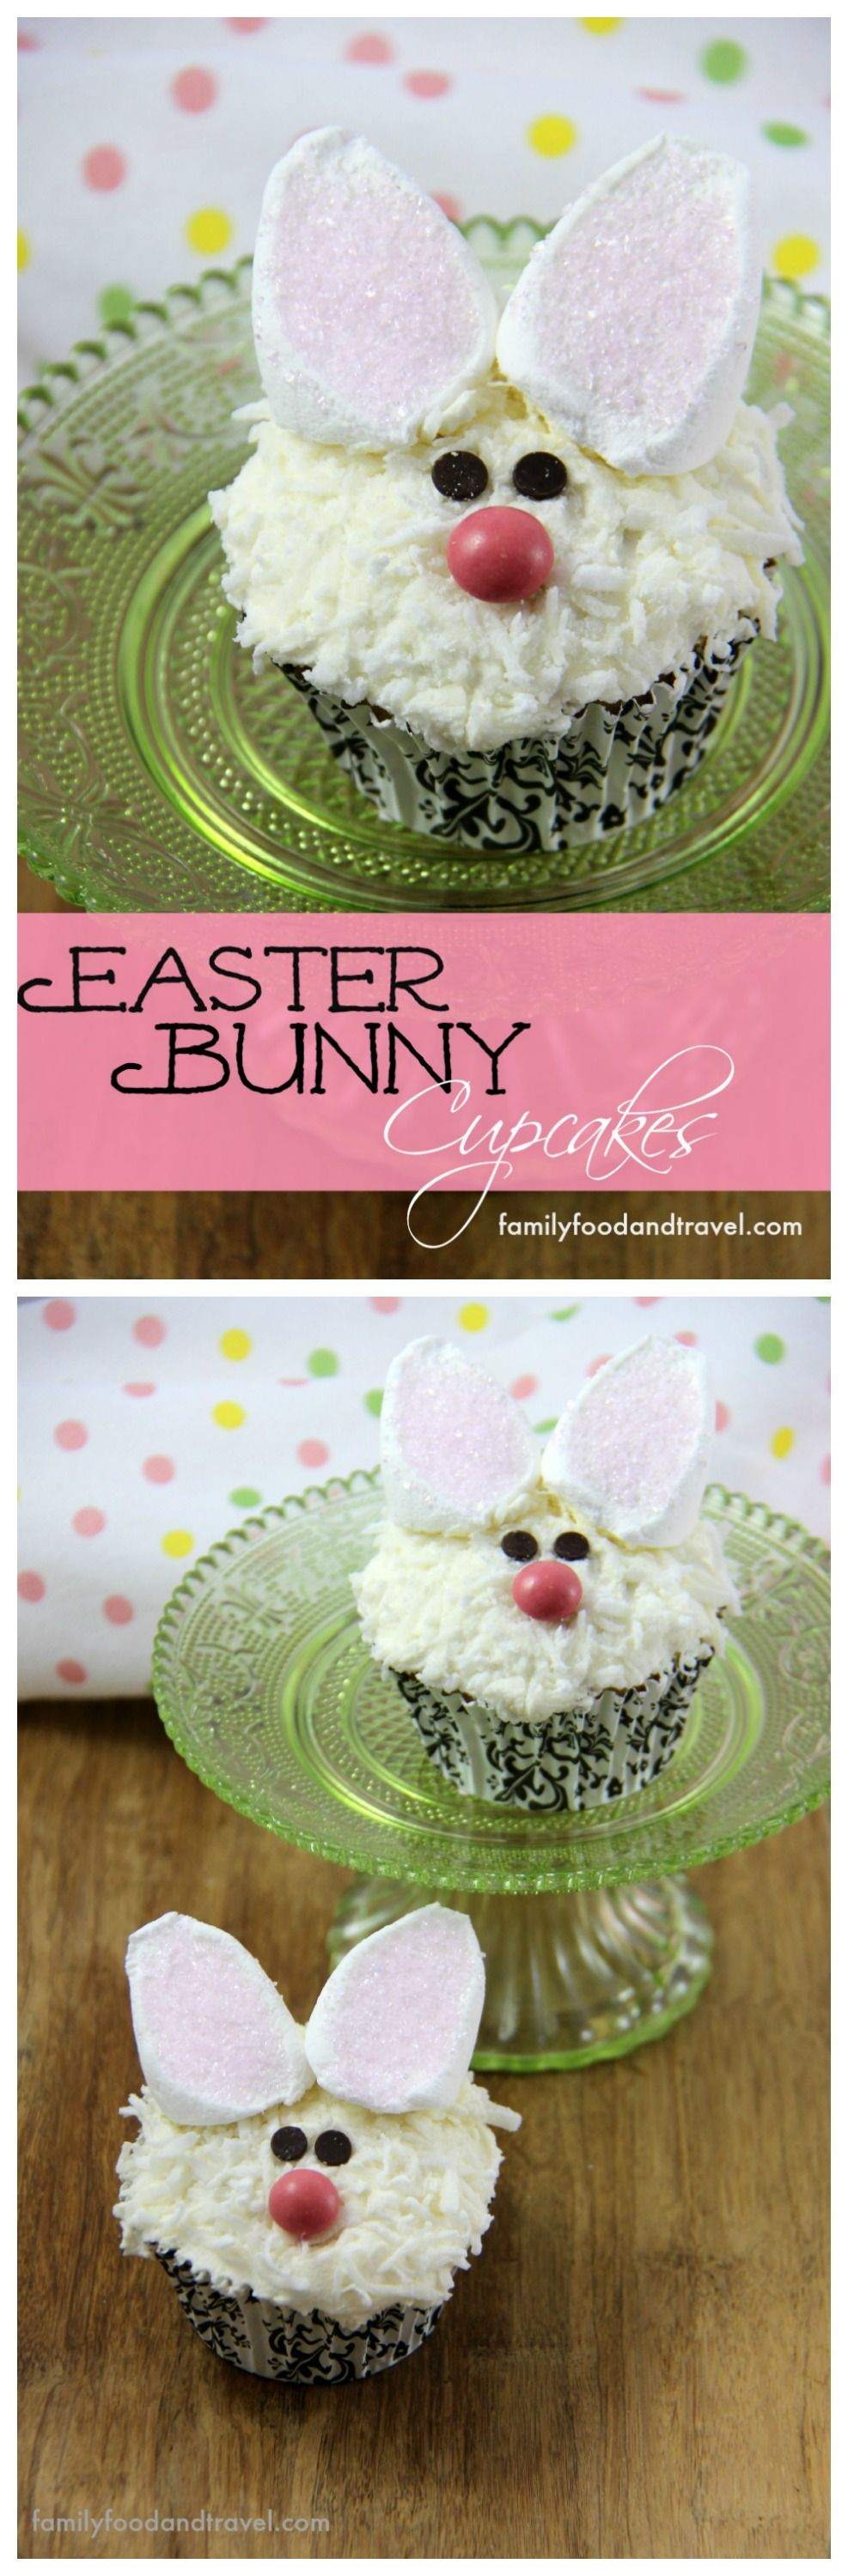 Easter Bunny Cupcakes - Step by step guide to create these adorable cupcakes that are perfect for your next Spring or Easter event. Who doesn't love these adorable bunnies?